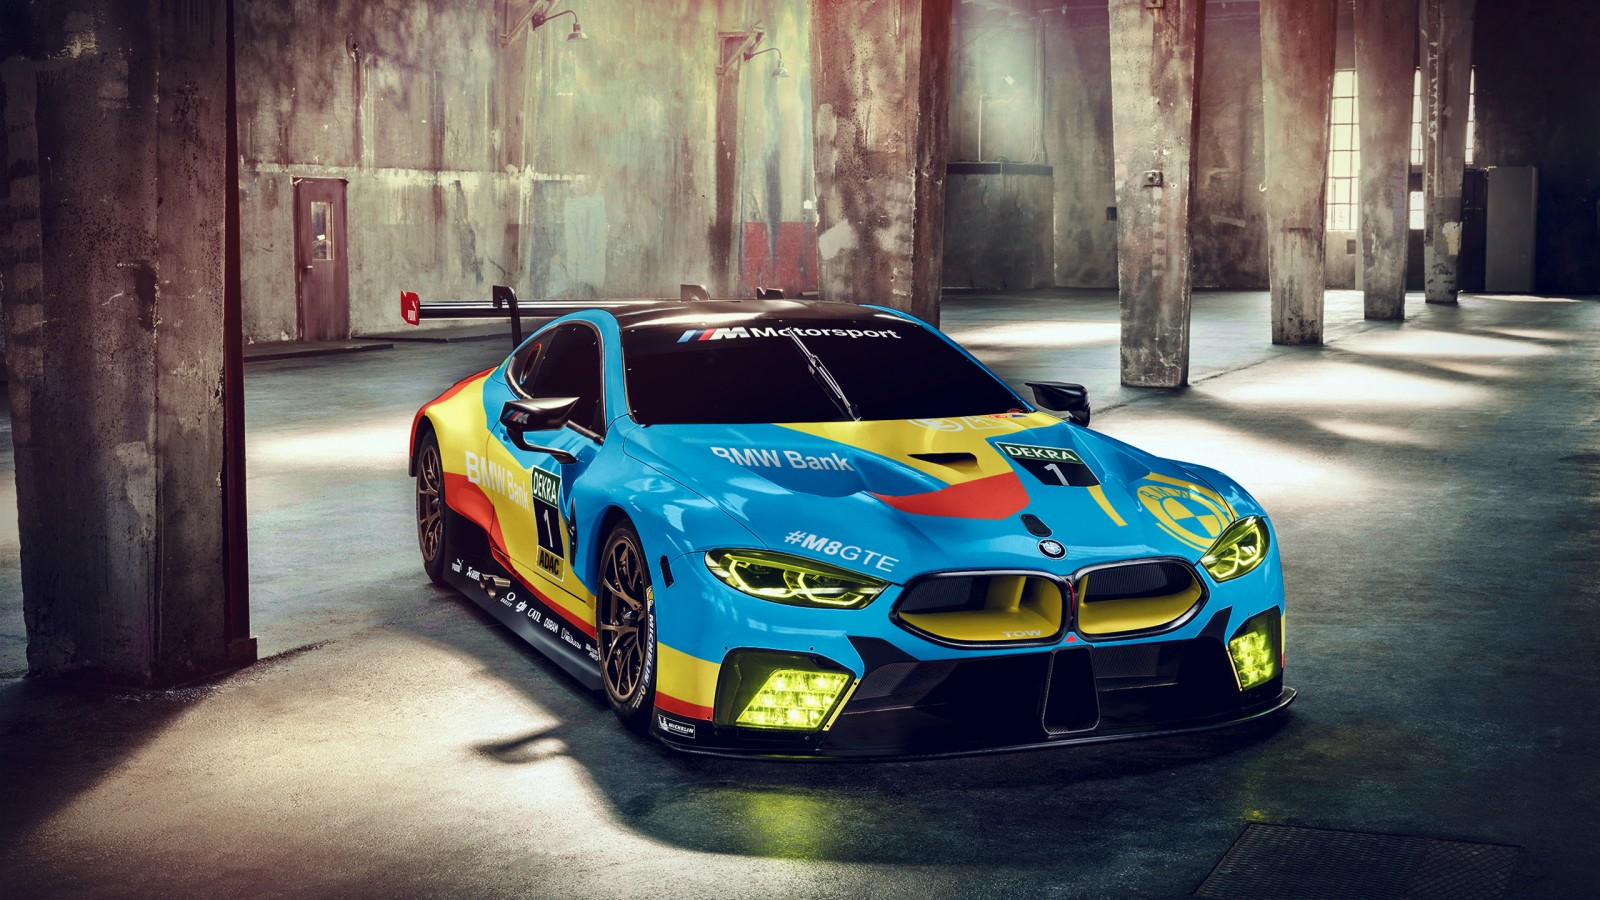 Bmw M8 Gte 2018 Wallpaper Hd Car Wallpapers Id 9270